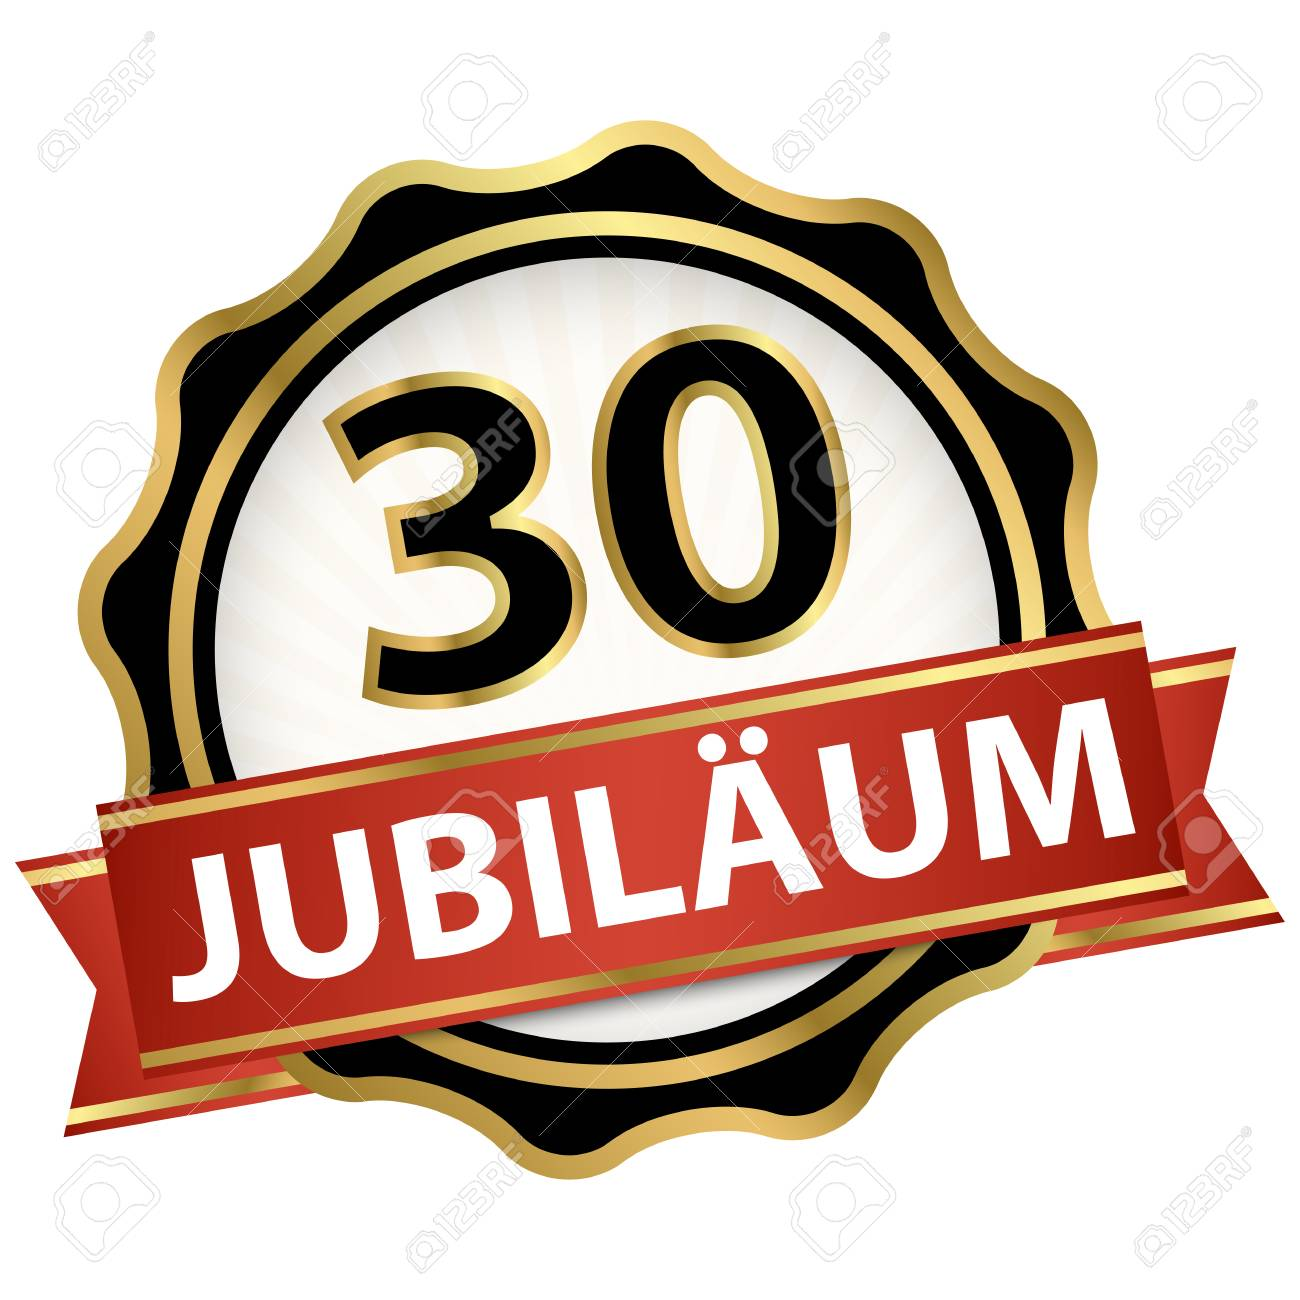 Jubilee button with banner for 30 years (text in german) - 113768985